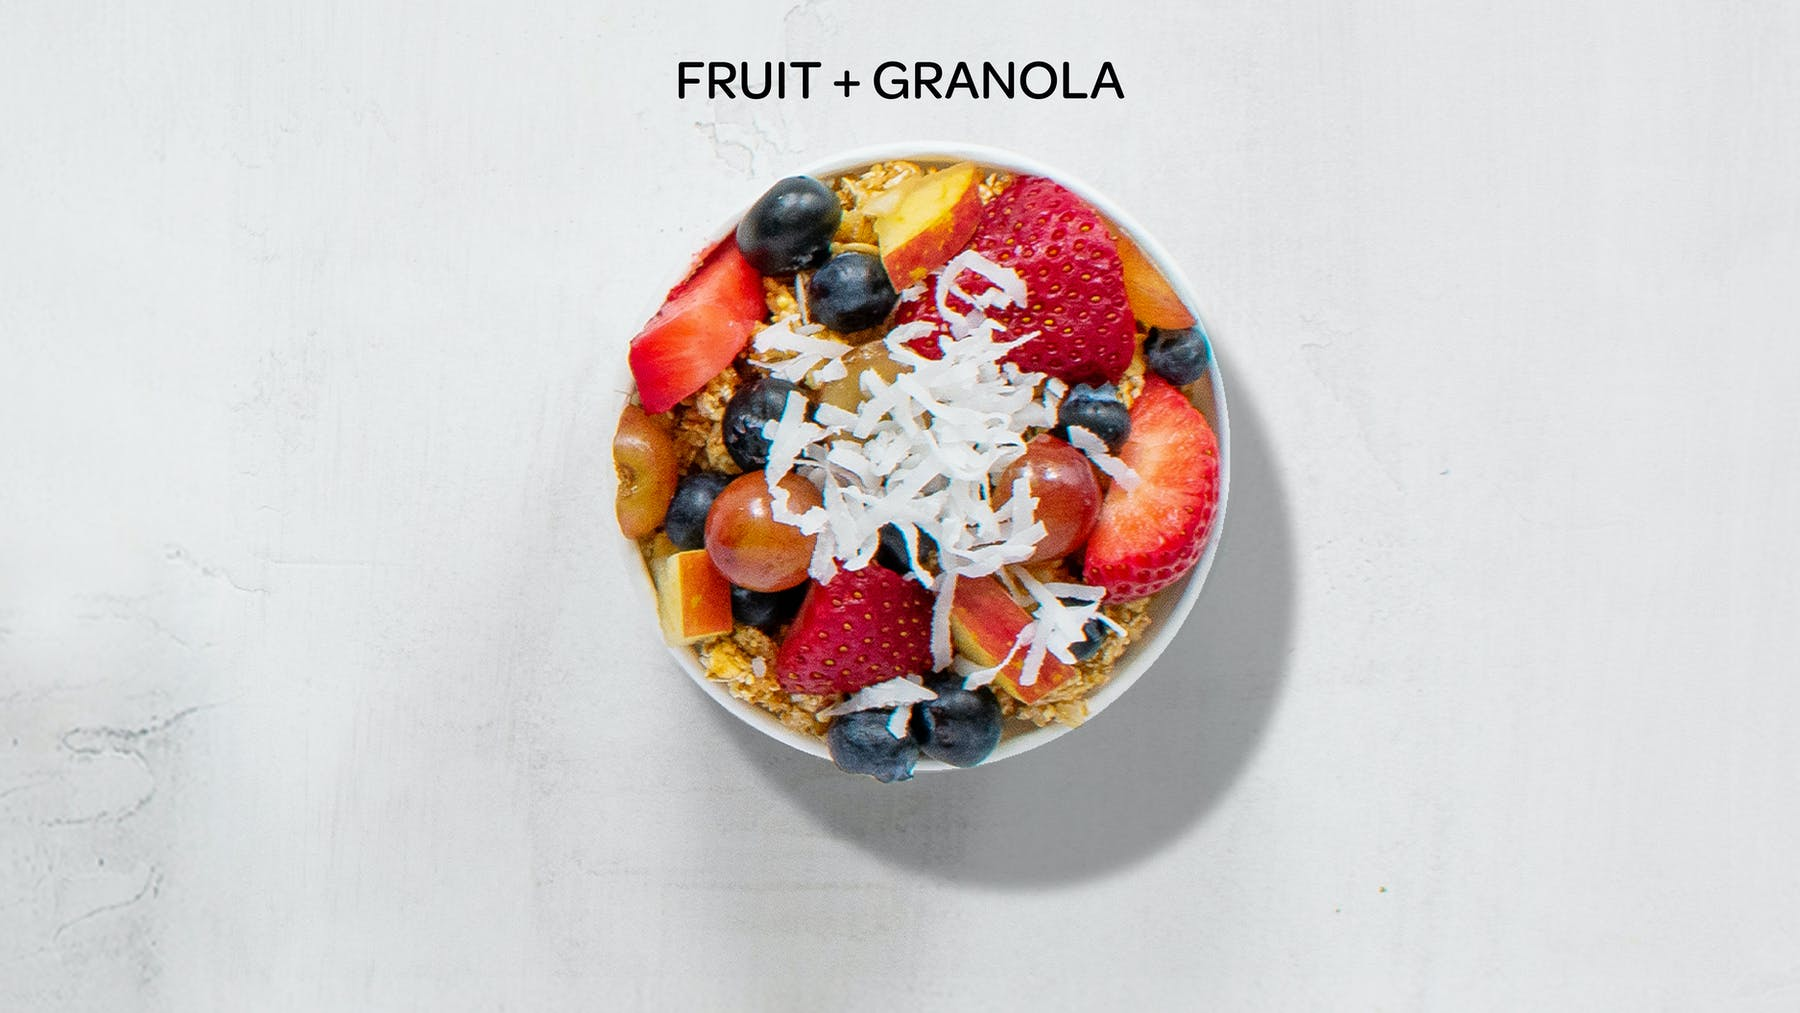 an overhead view of the fruit and granola honeybar